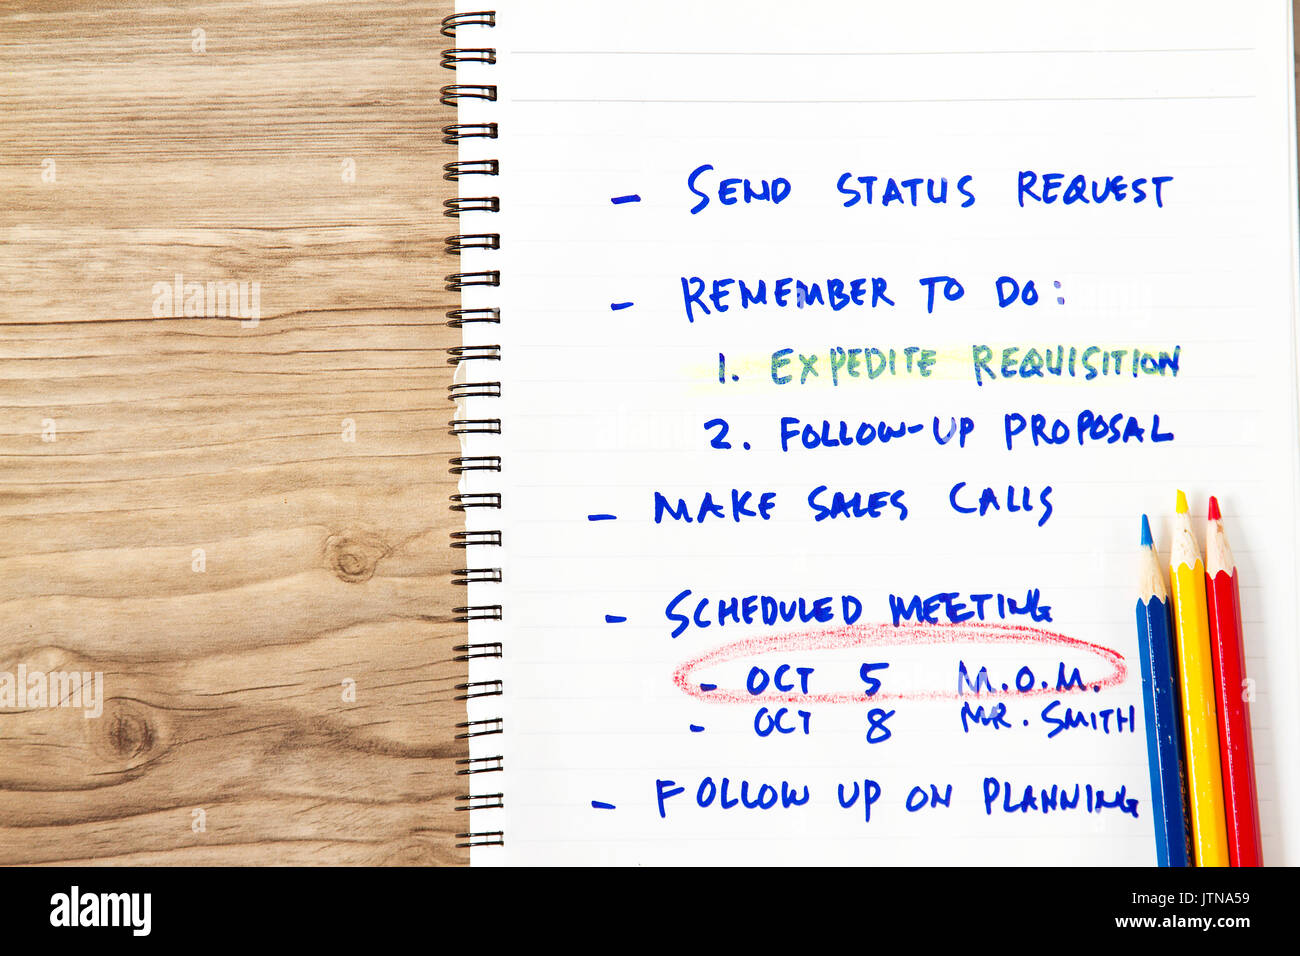 Personal notes concept with notation on mostly follow-up and reminders. - Stock Image